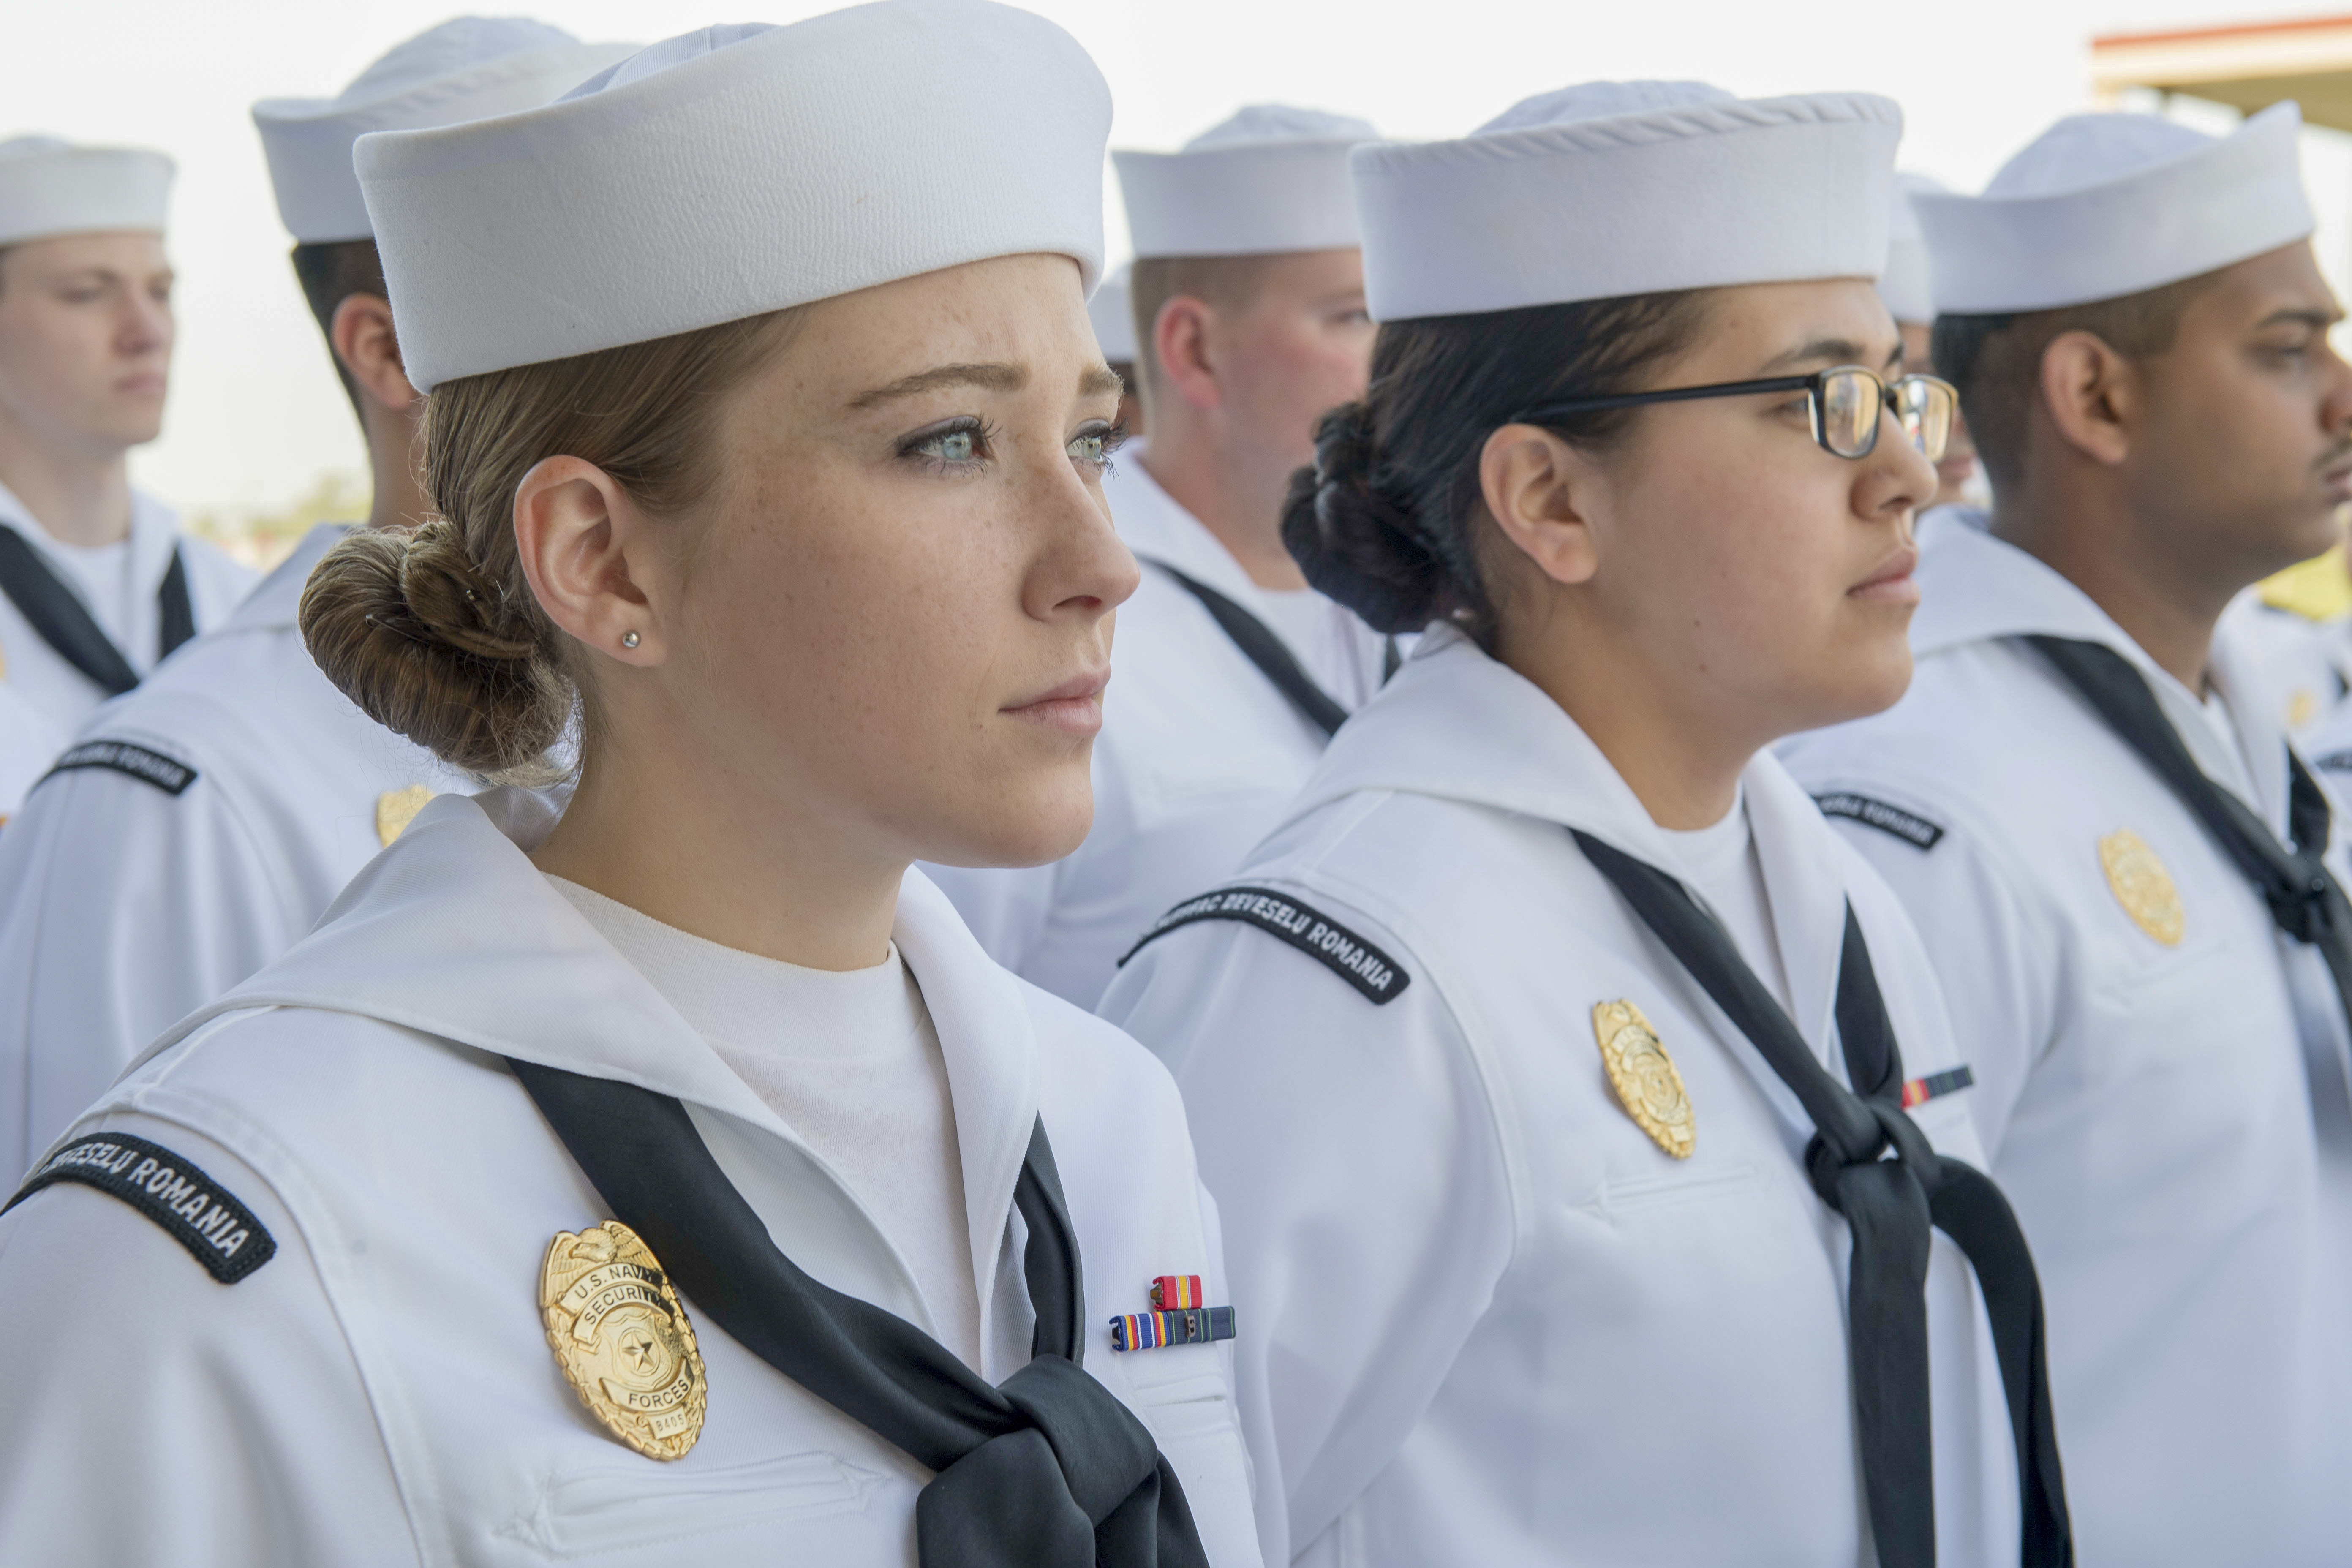 Sailors at Naval Support Facility (NSF) Deveselu, Romania, stand in formation for a dress white uniform inspection May 1, 2018. NSF Deveselu and AAMDS Romania are co-located with the Romanian 99th Military Base and play a key role in ballistic missile defense in Eastern Europe. (U.S. MC1 Jeremy Starr/Navy)